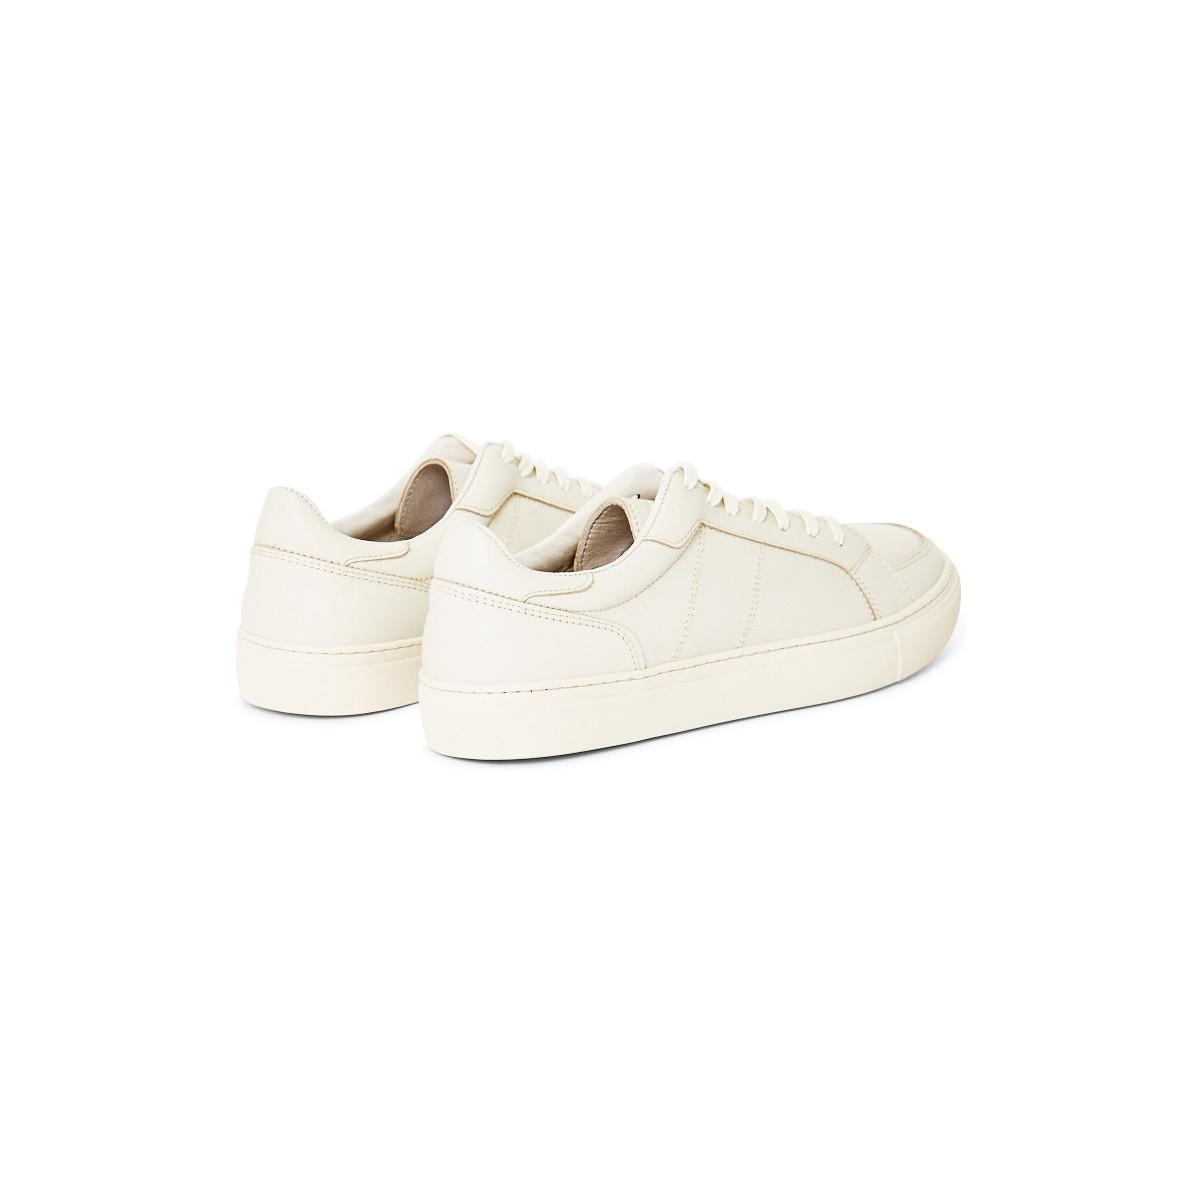 95abe58bdde3 Garment Project Off Court Leather Trainers Off White Men s Shoes ...